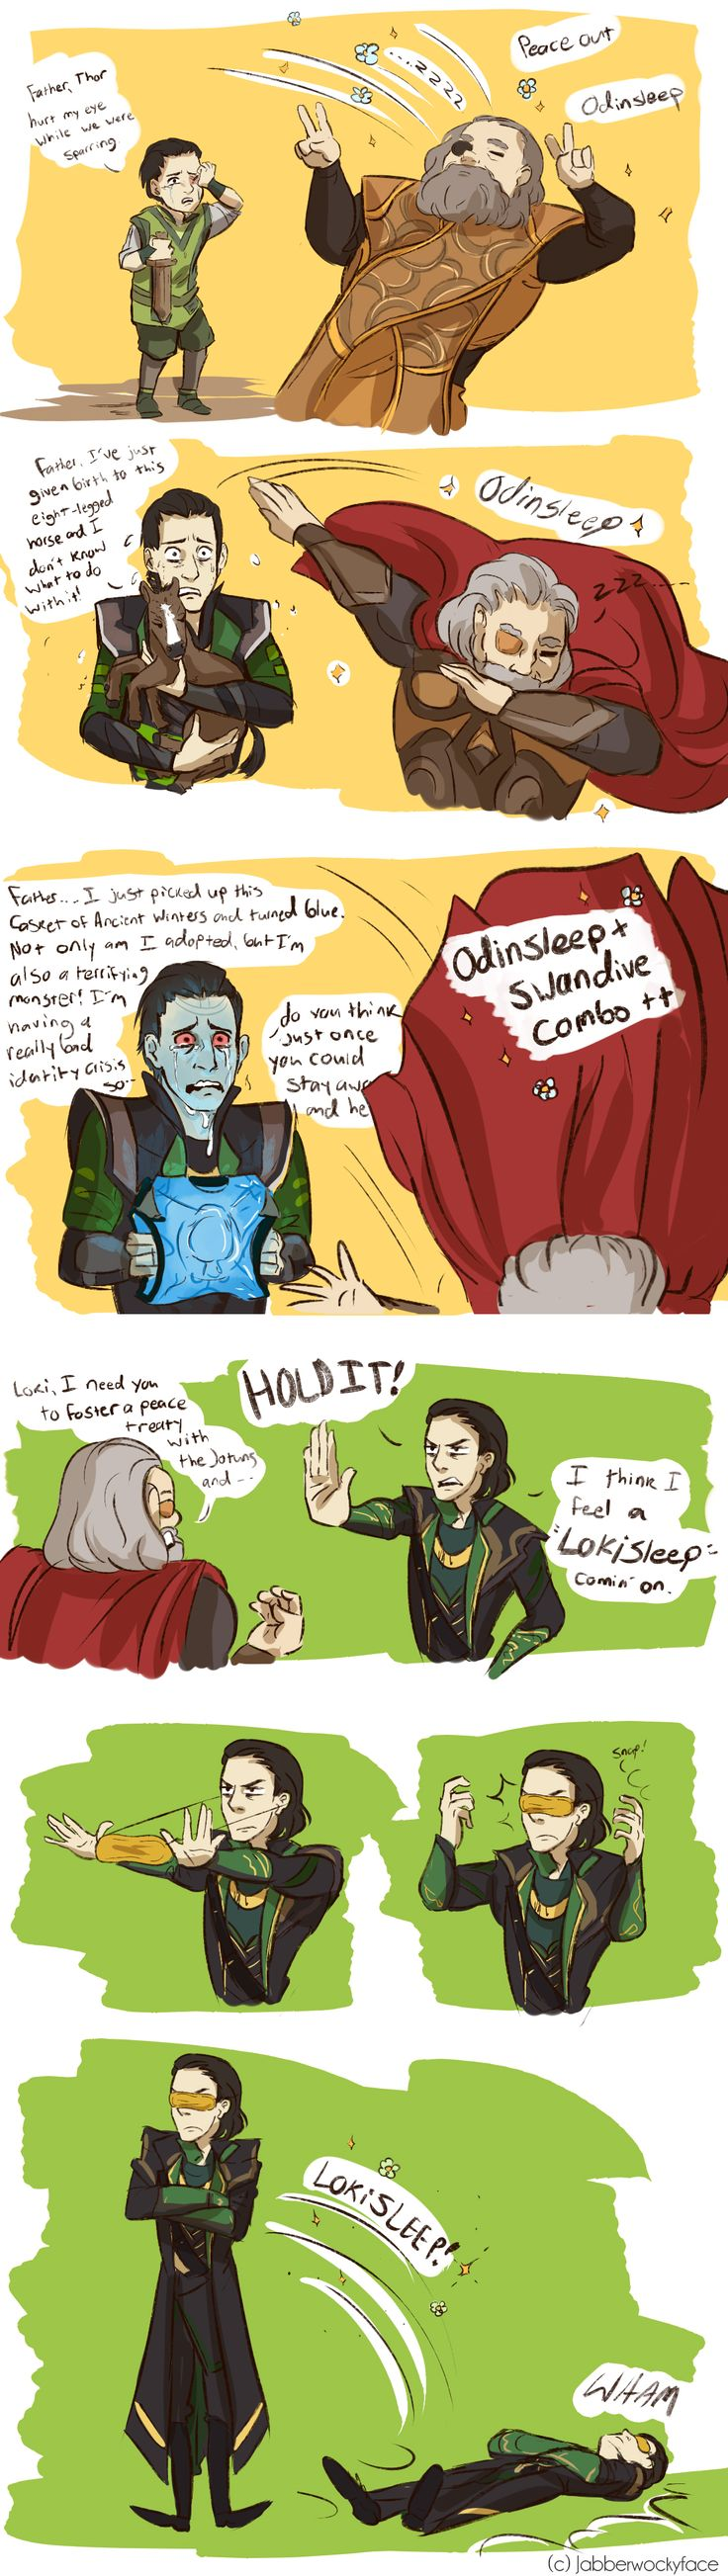 I honestly feel so bad for Loki.  He was having a serious identity crisis and after the Odinsleep and all the drama after, I can't really blame him …